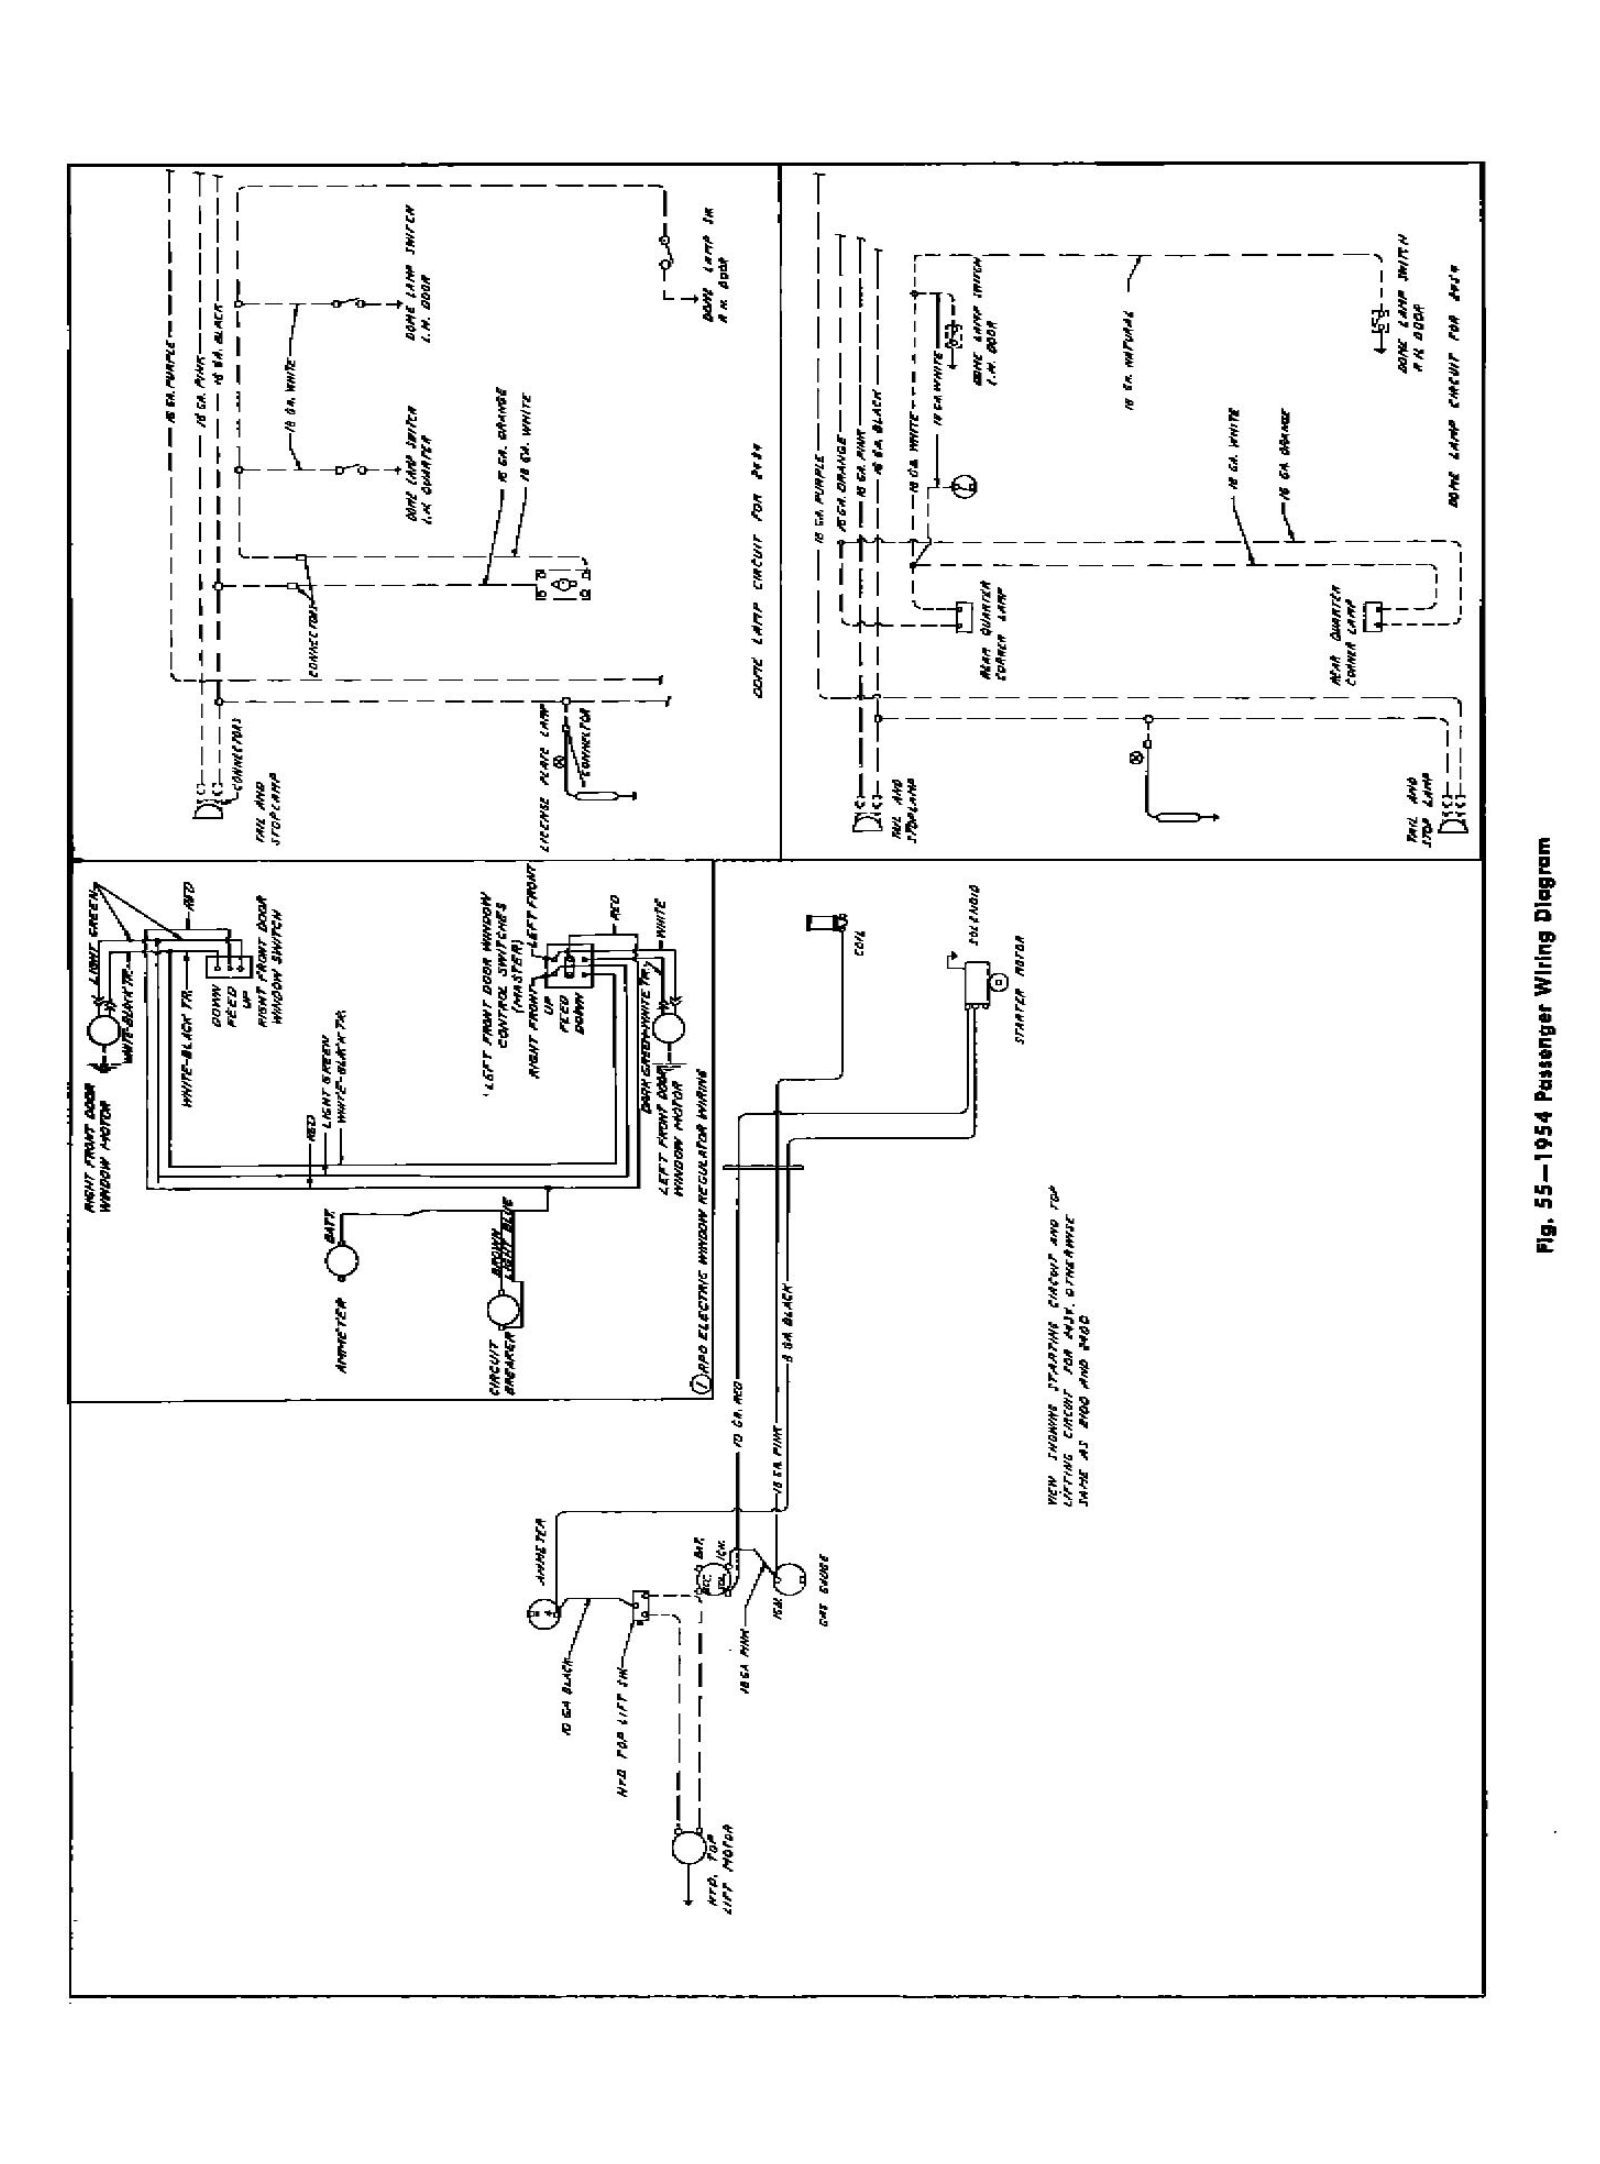 Old Wiring Diagram